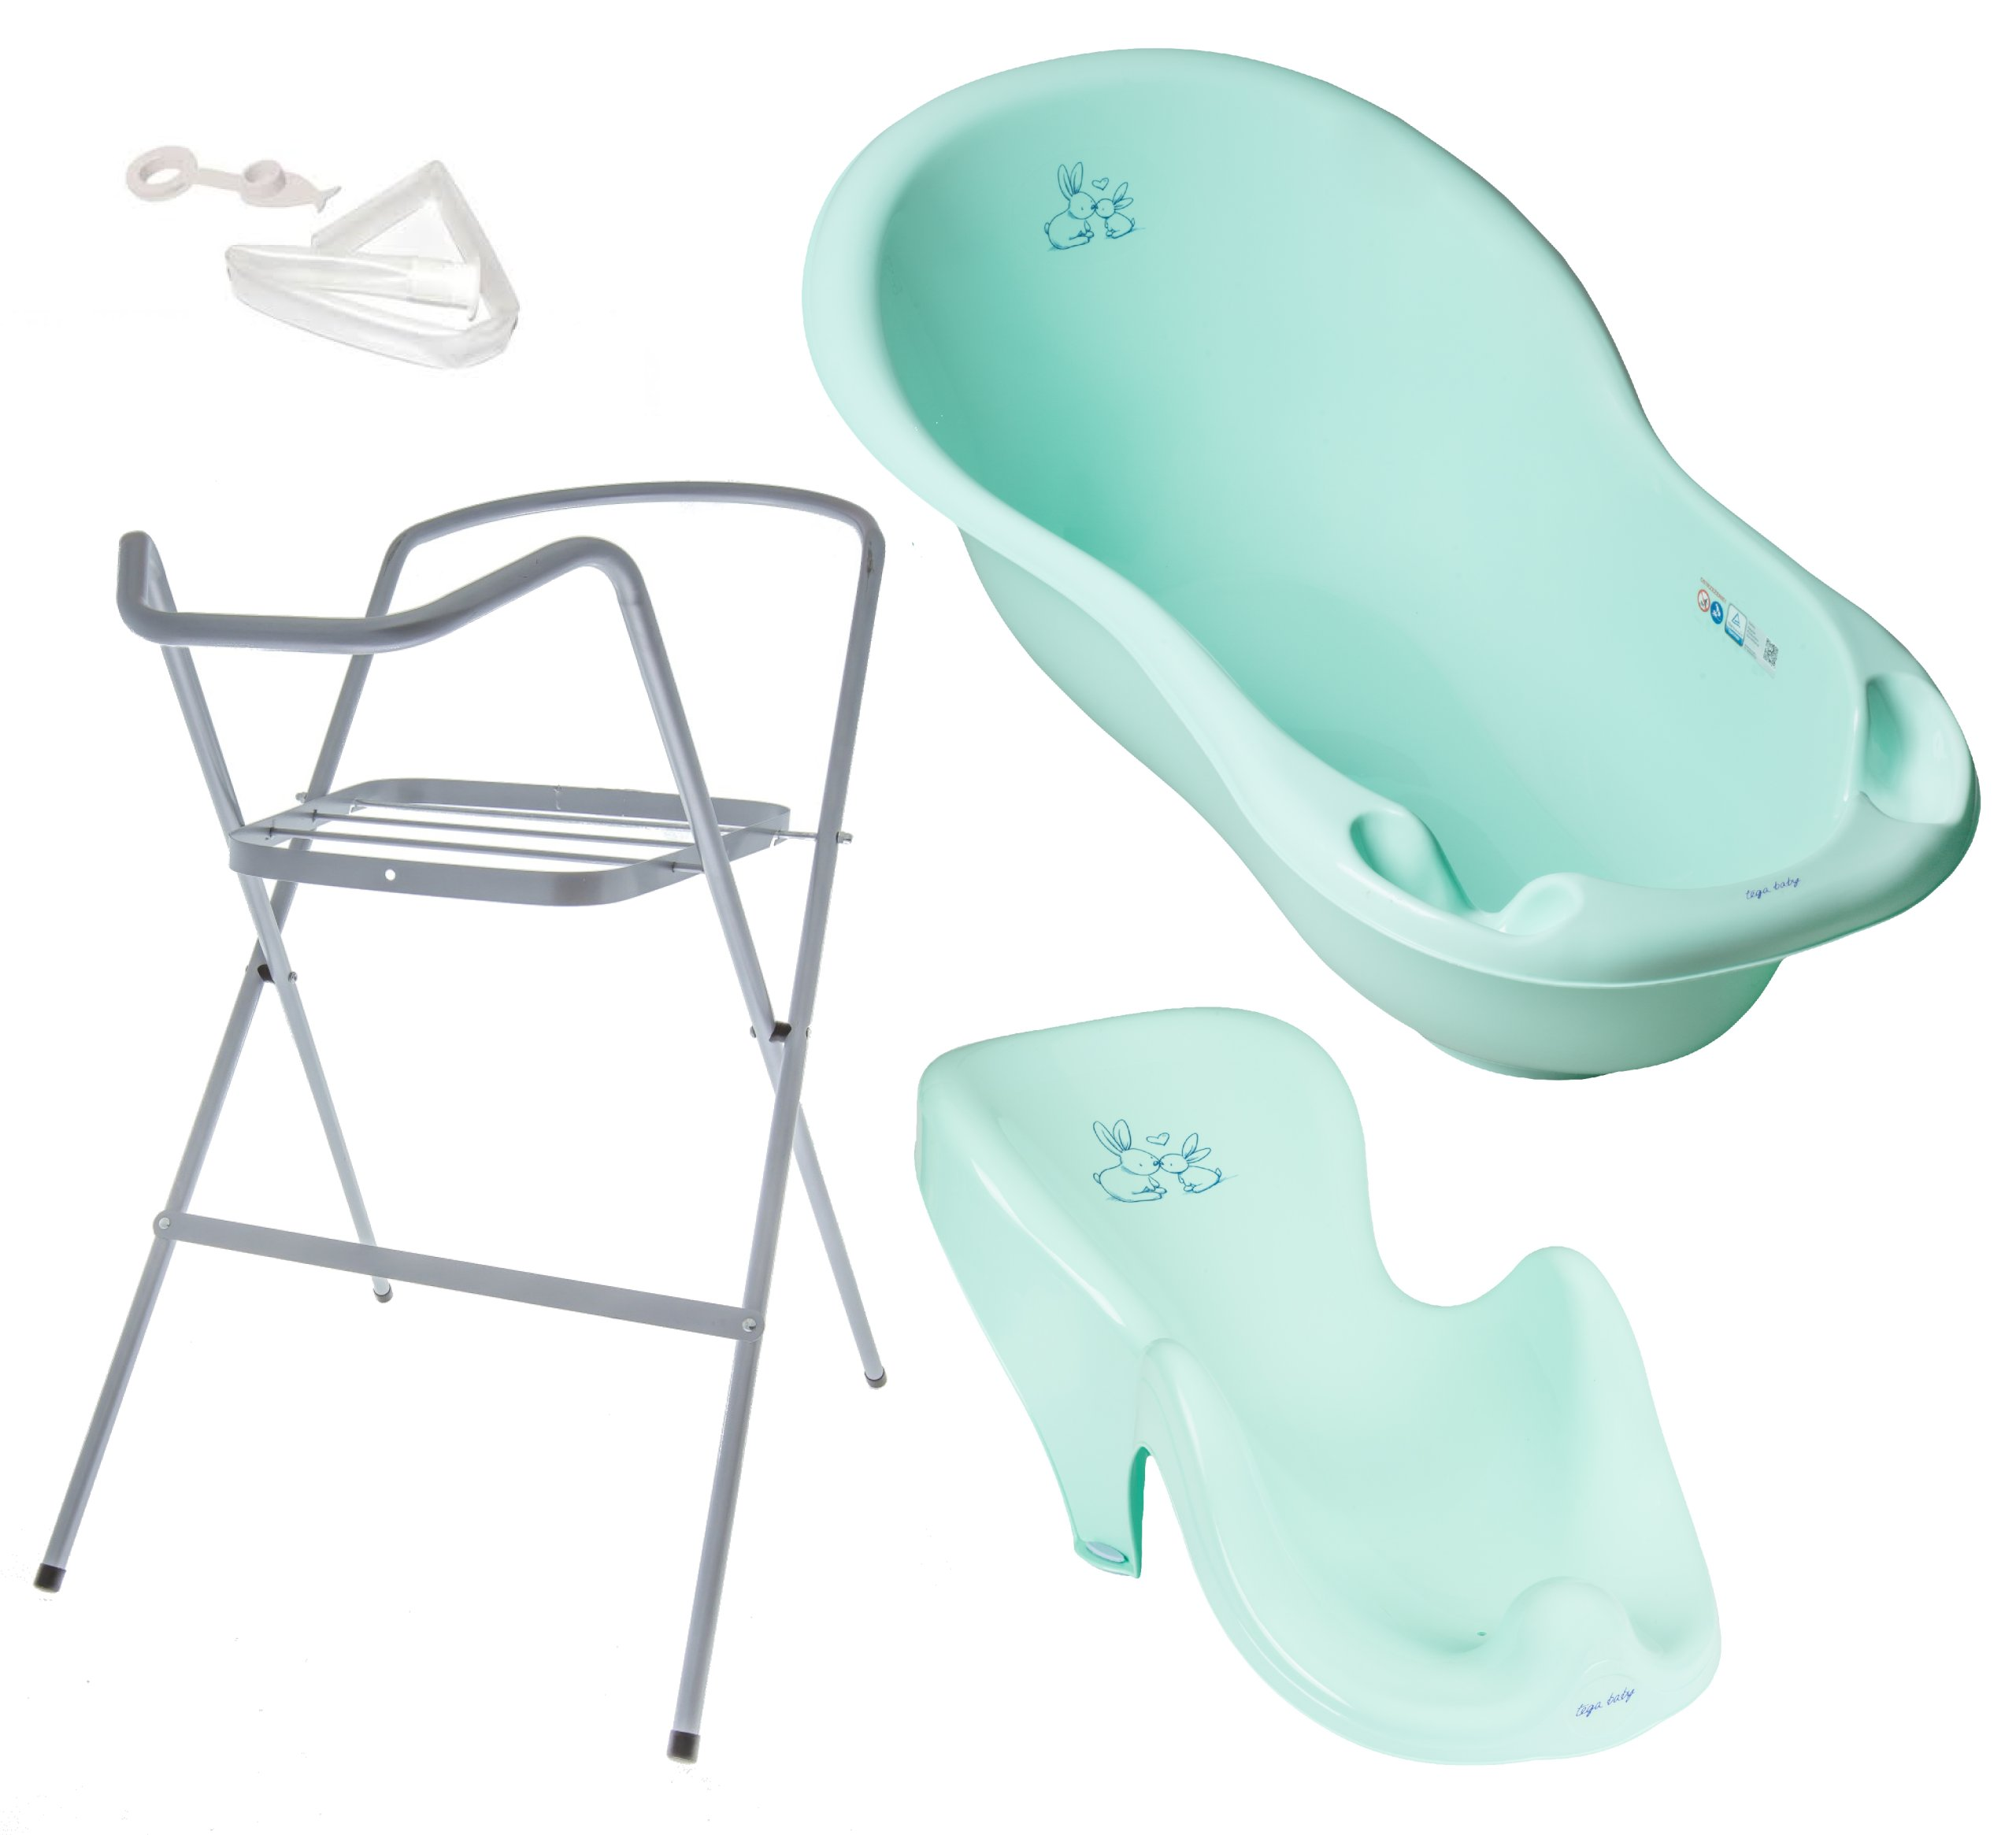 Item Baby BATH 102, the OUTFLOW THERMOMETER STAND Tega CHILD seat